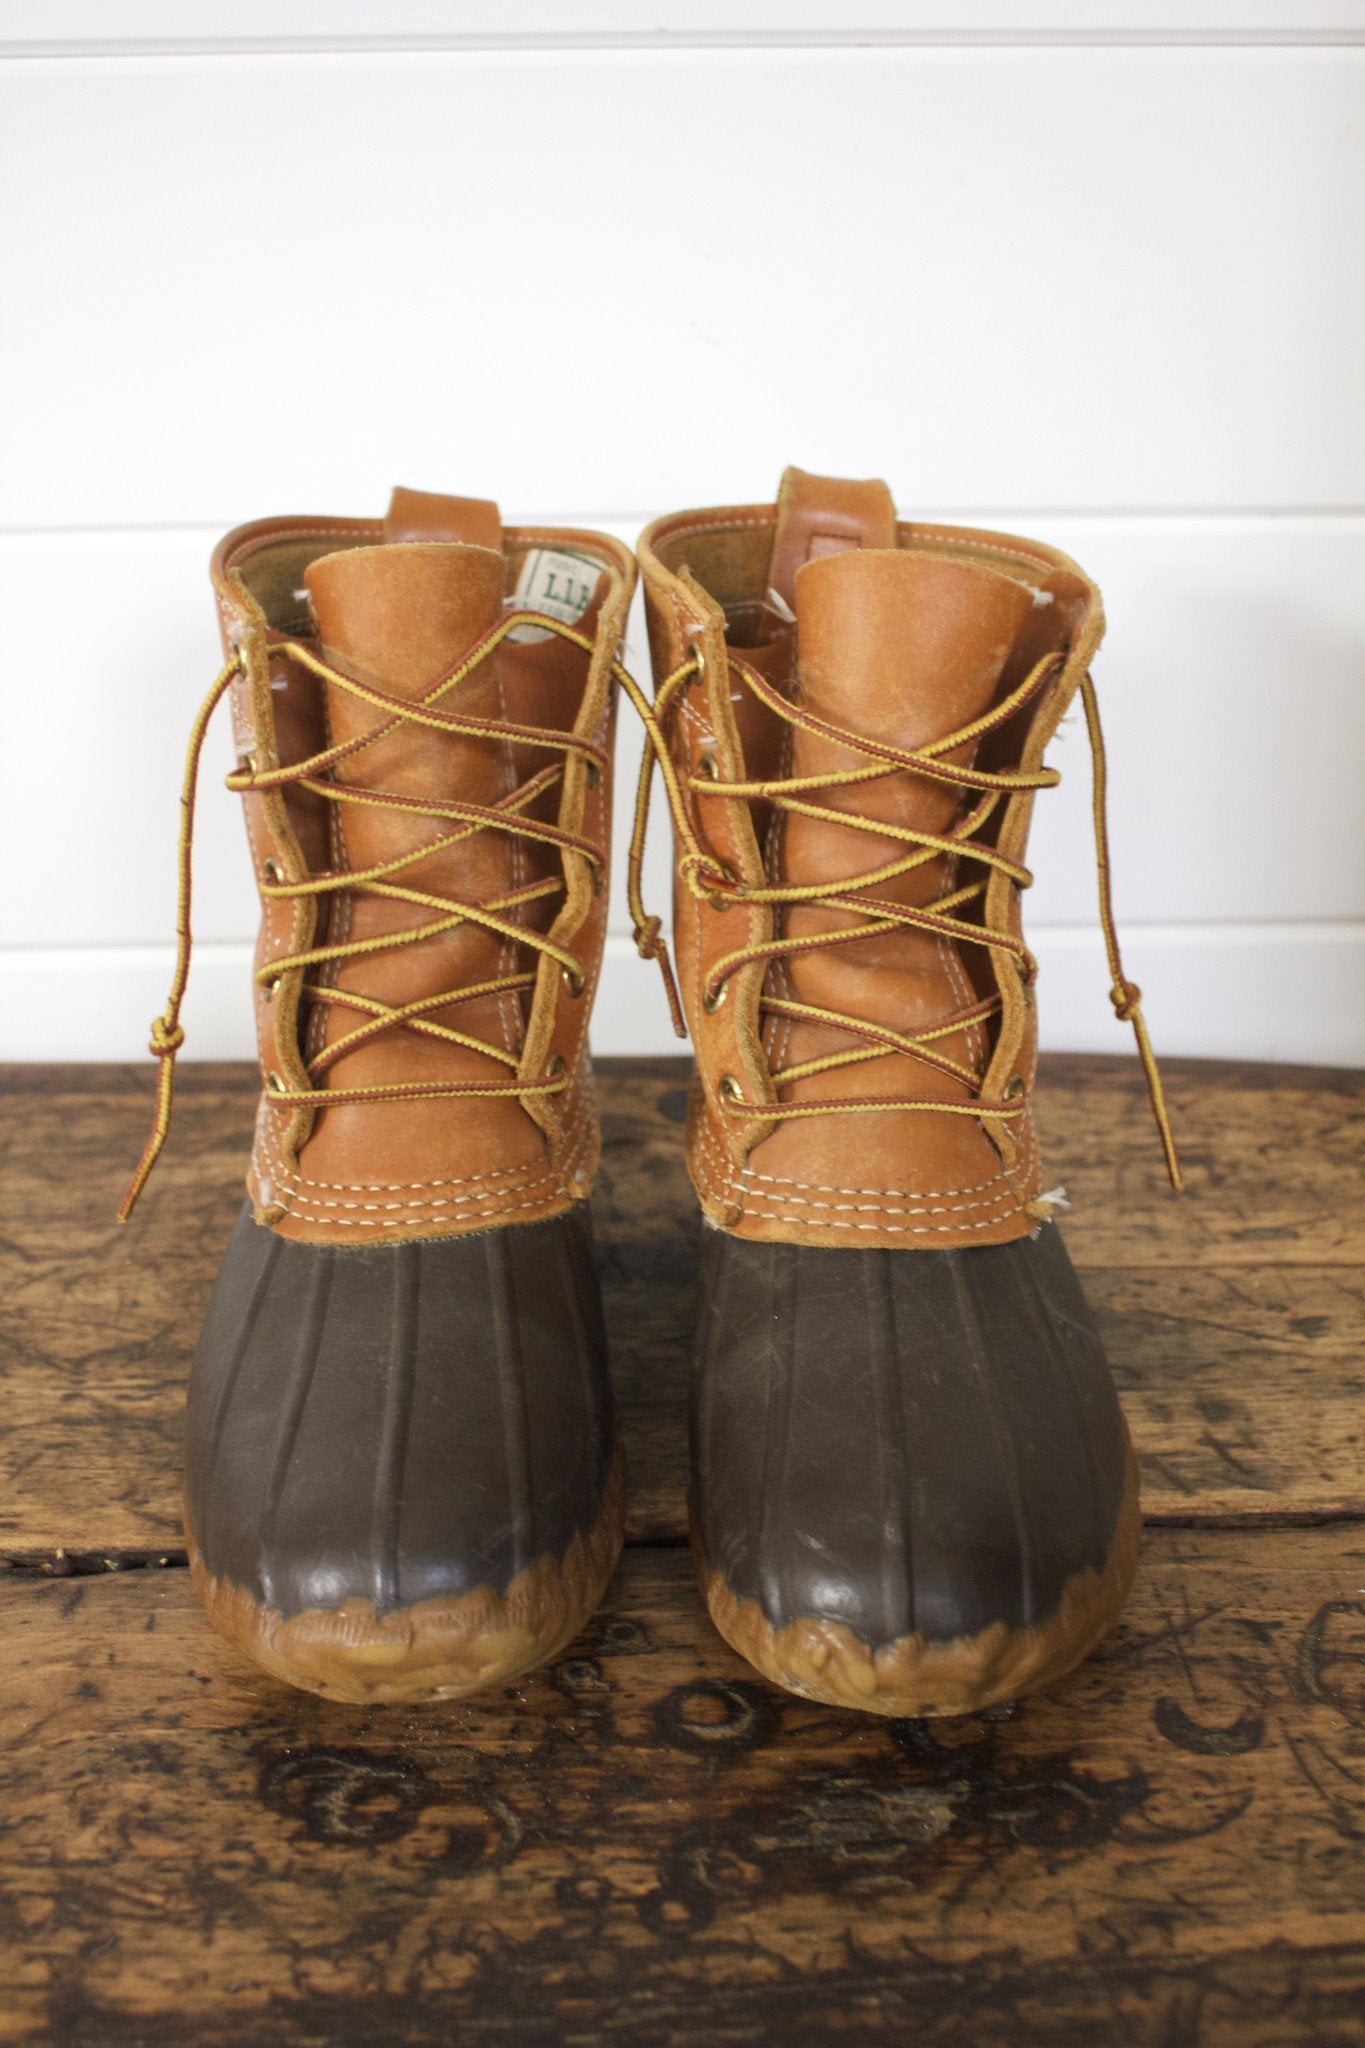 LL Bean Hunting Shoe - Diamonds & Rust